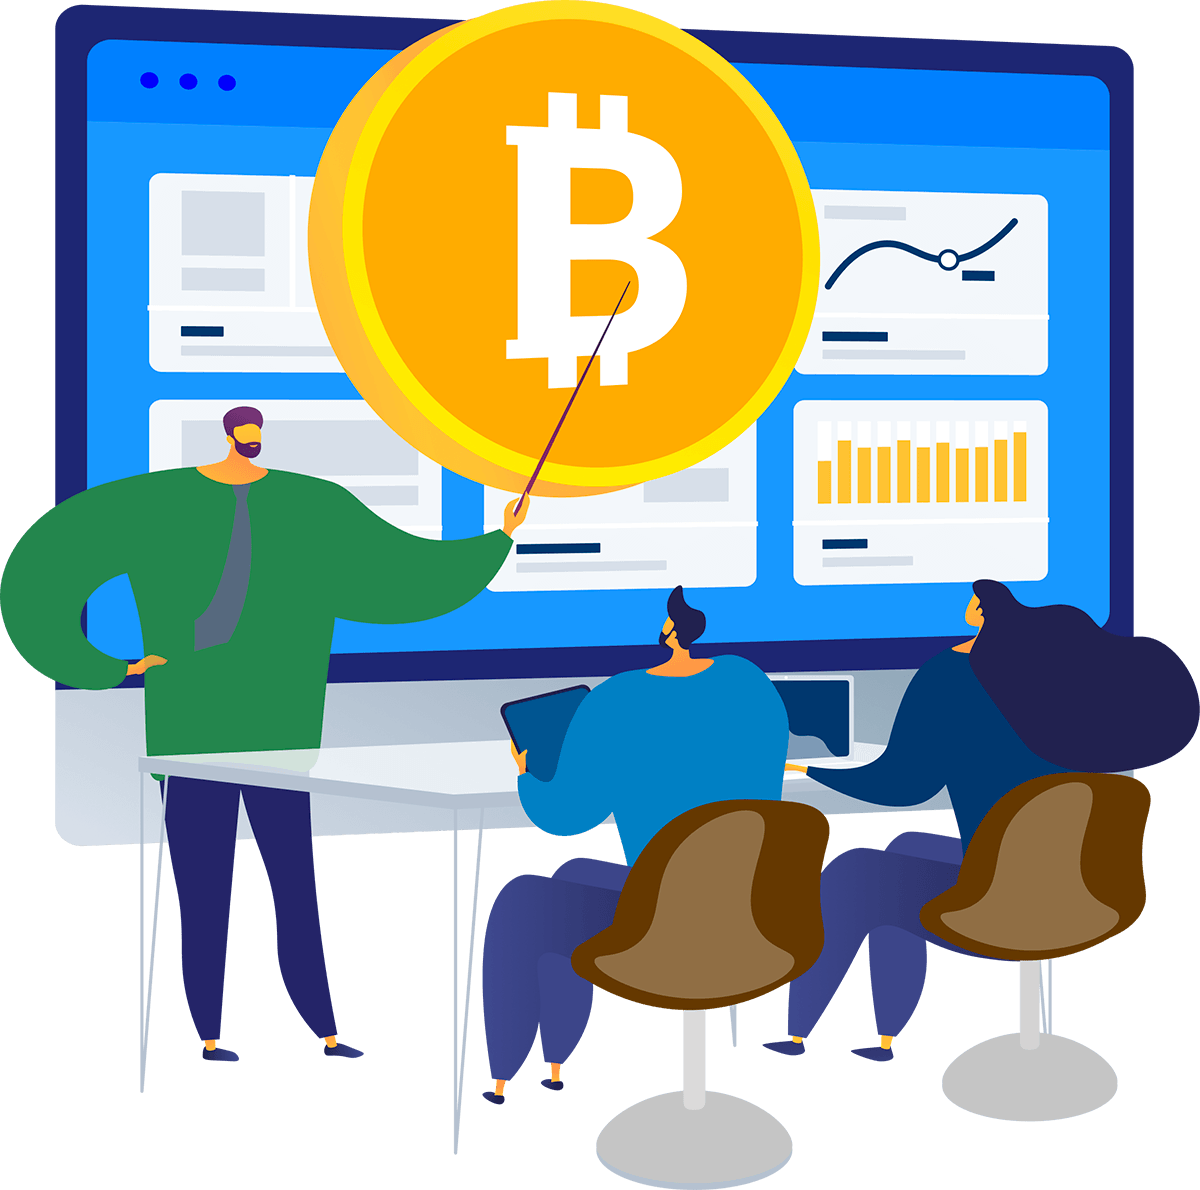 What are cryptos used for